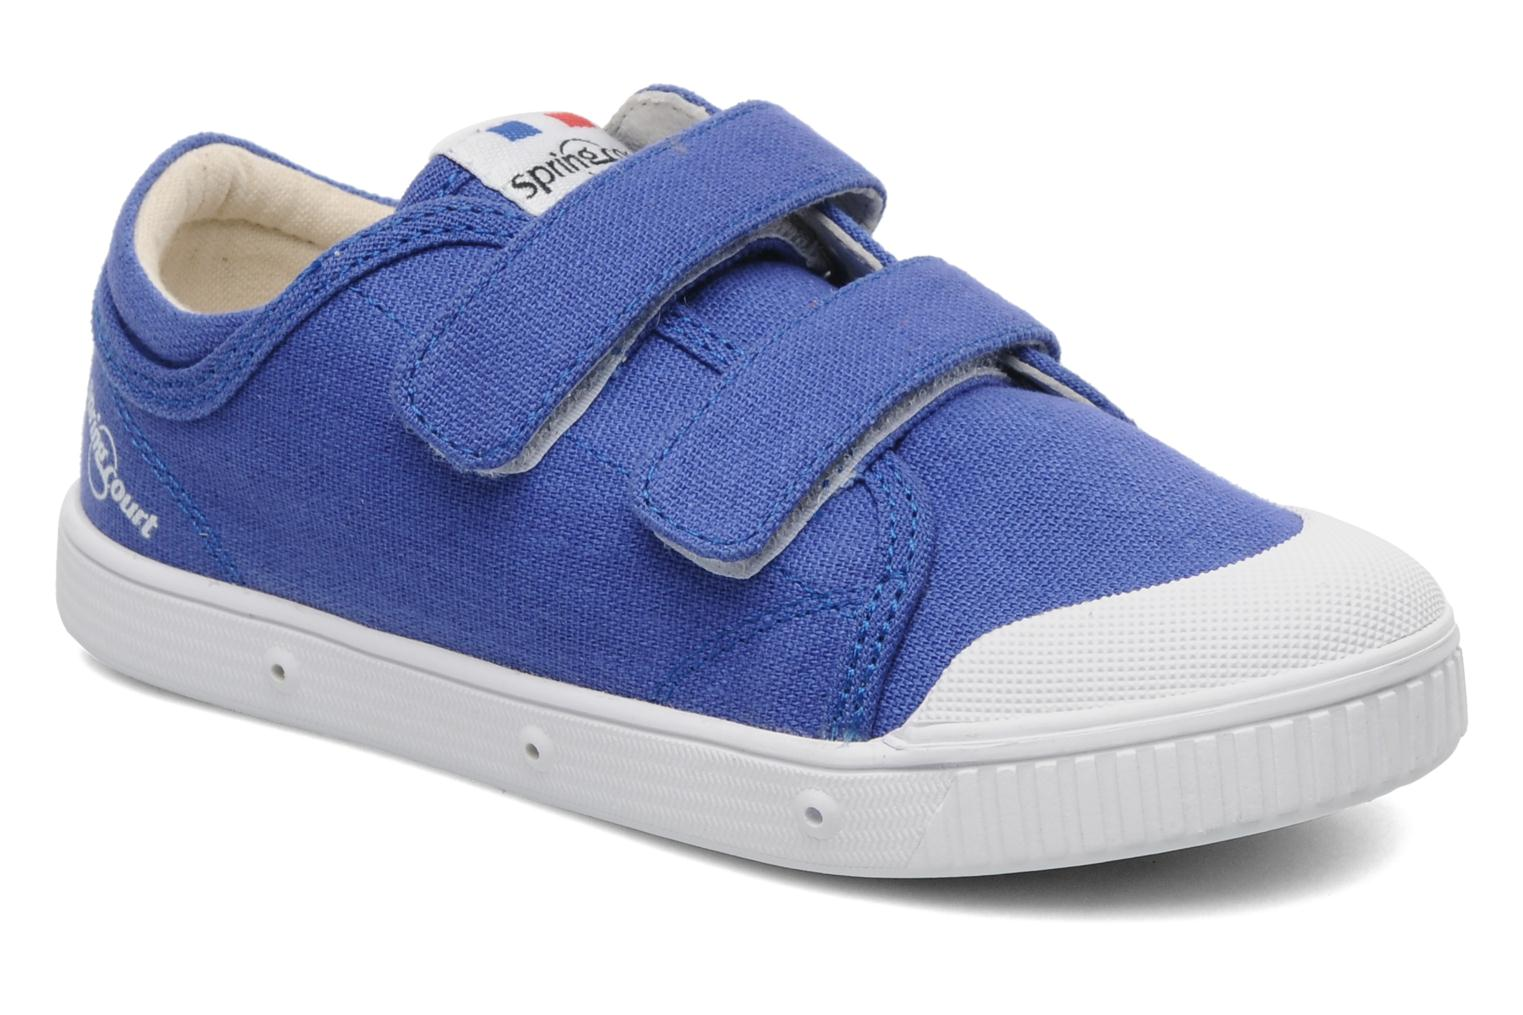 Sneakers GE1 CVS VELCRO by Spring Court